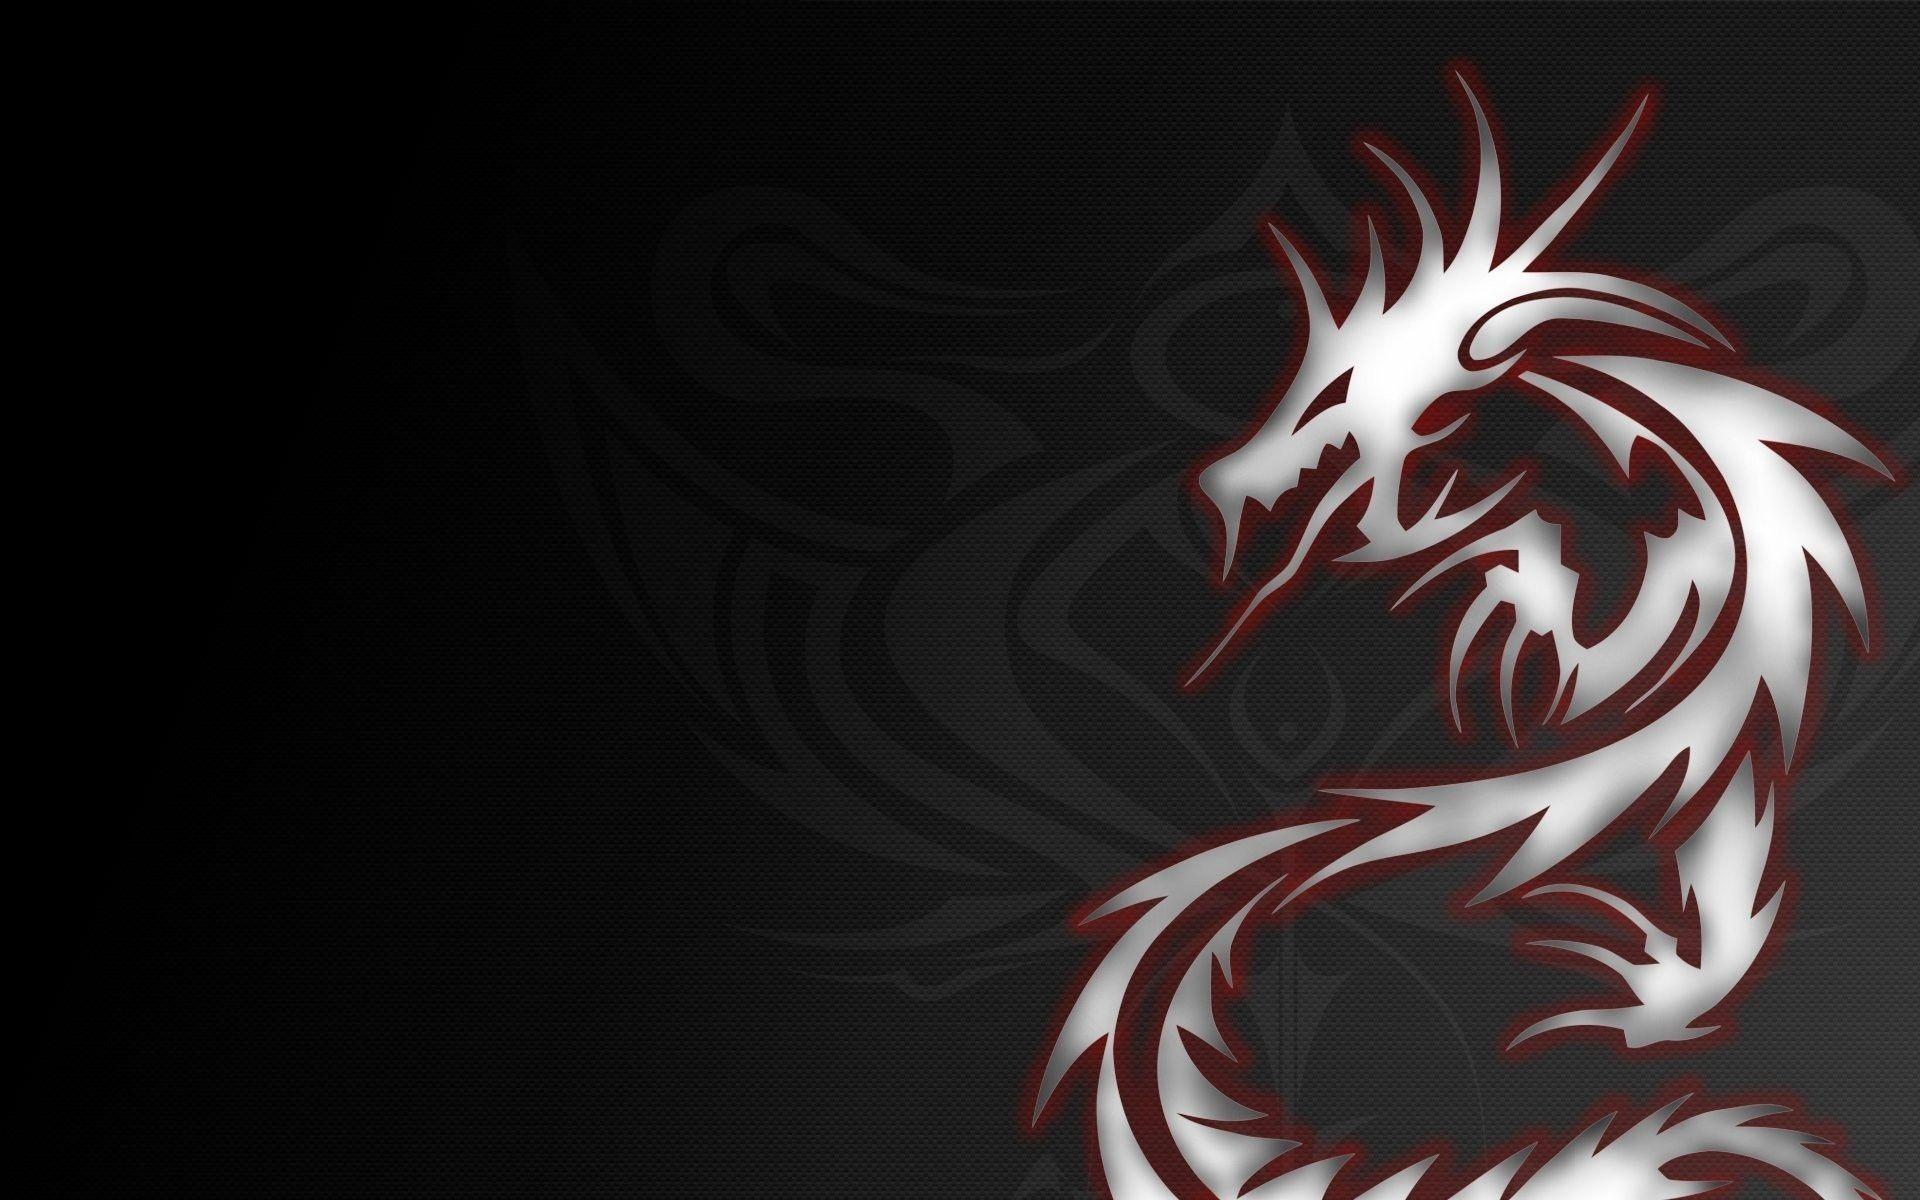 dragon tattoo hd wallpaper - photo #10